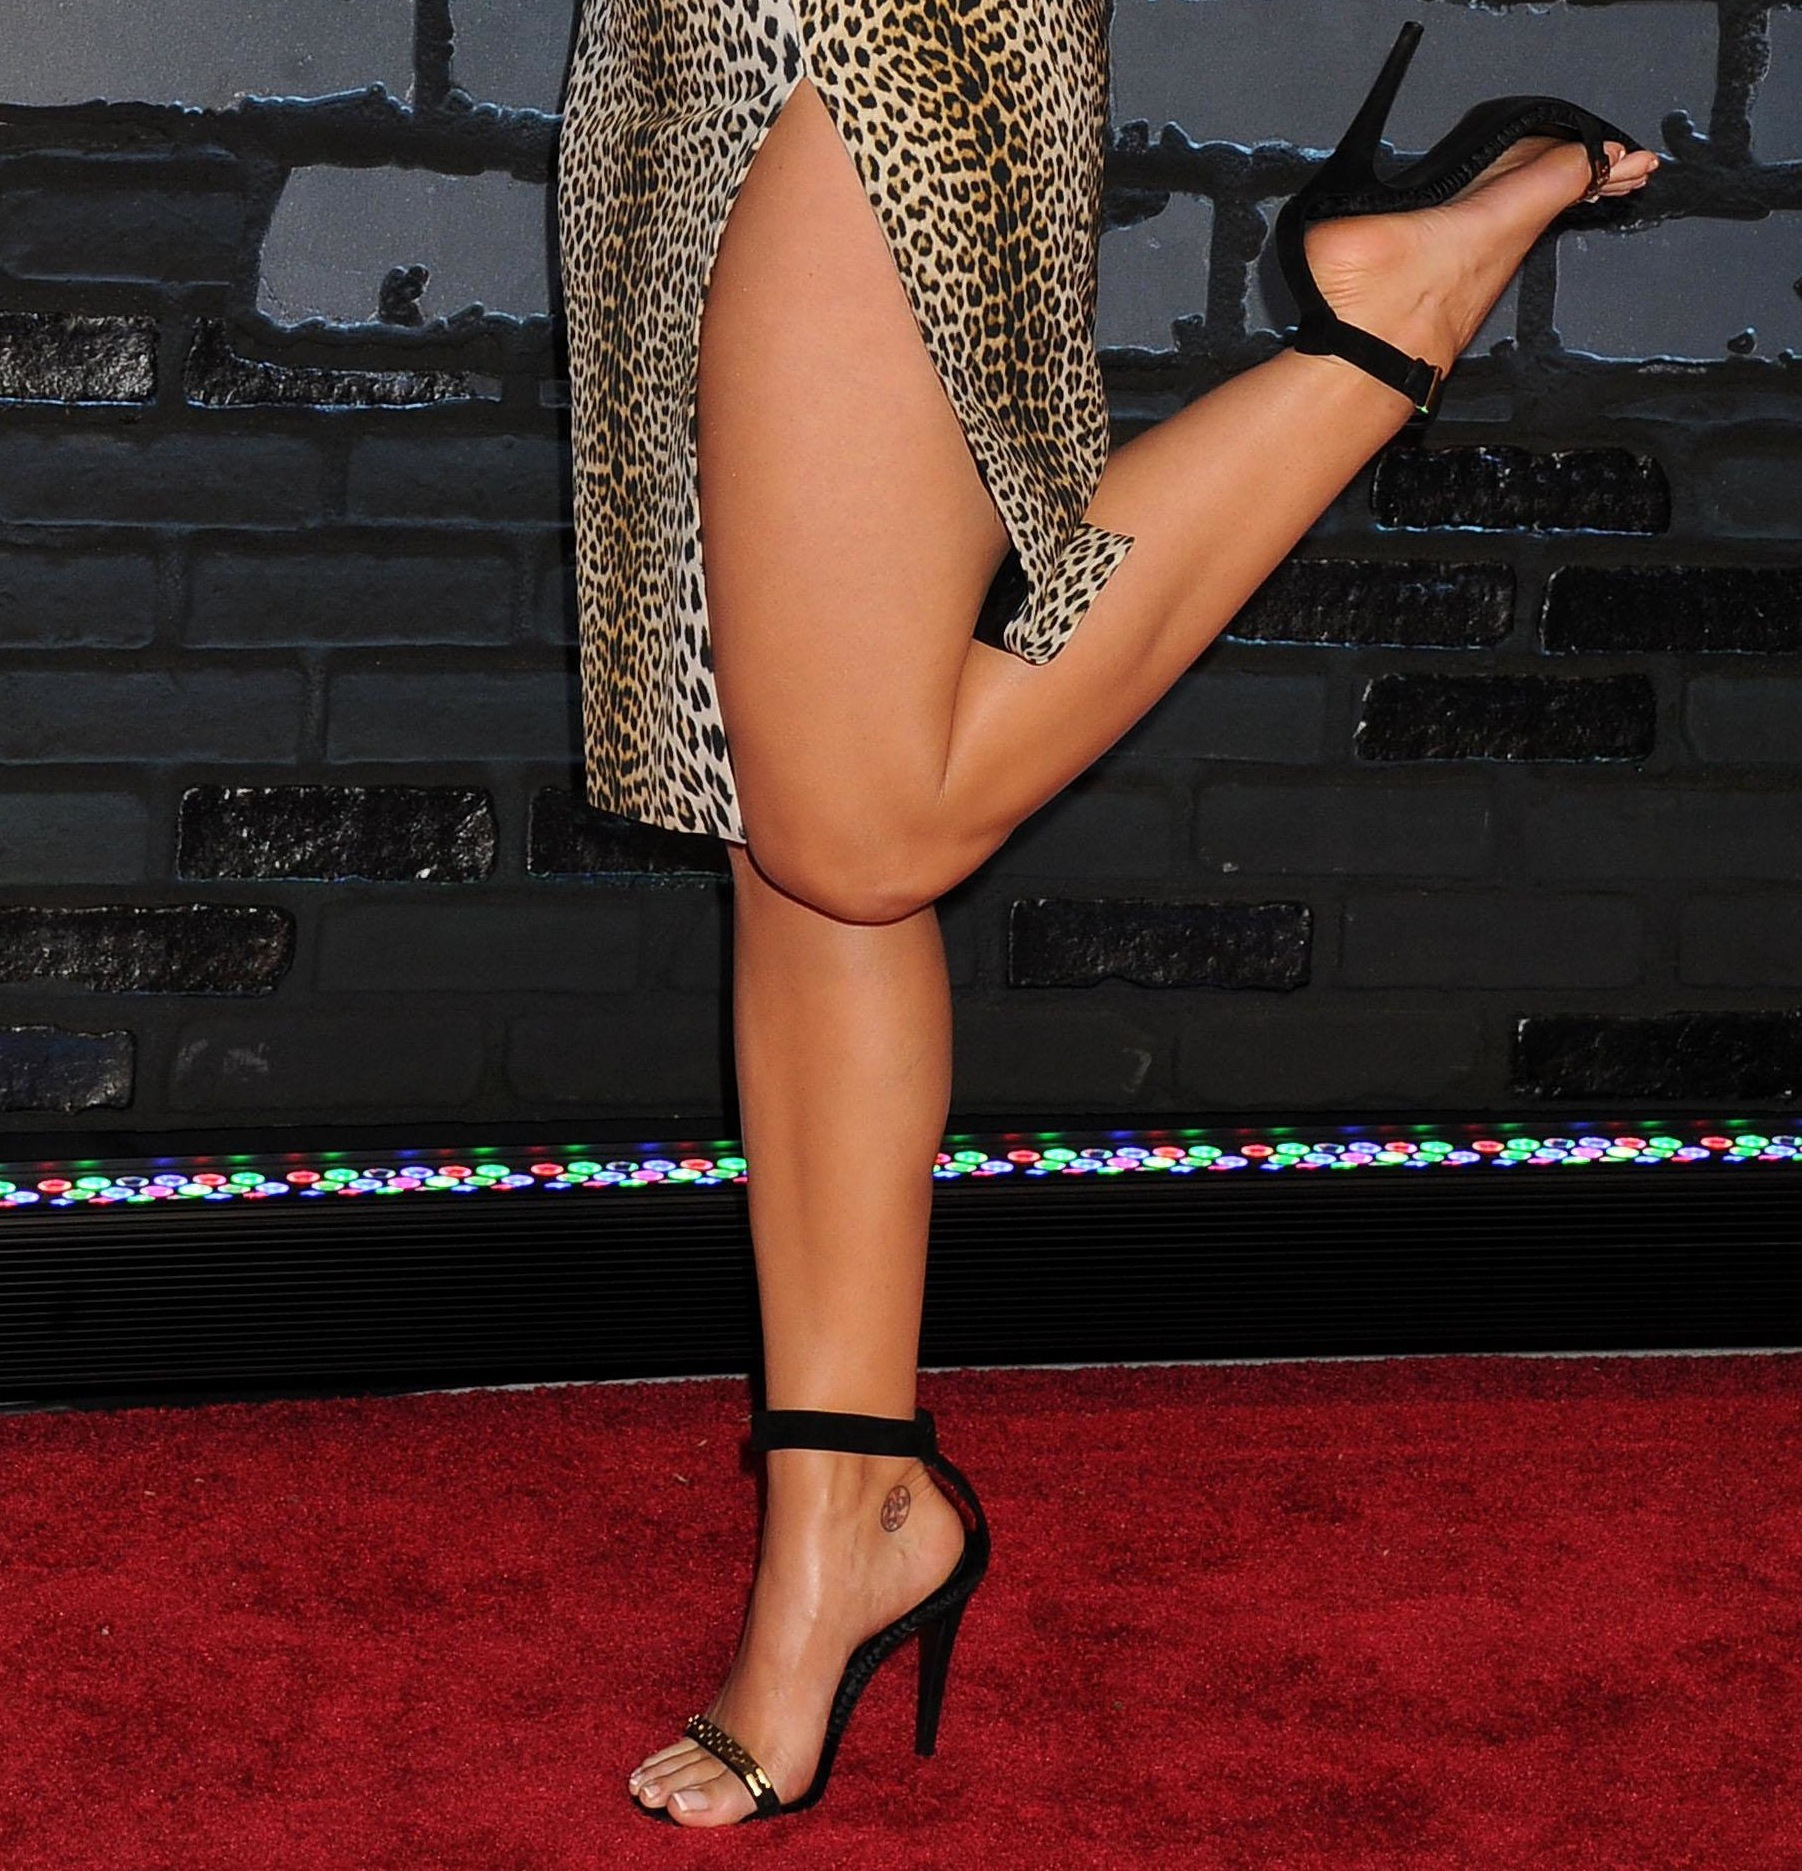 Celebrity legs new faces airliners httppicsfeetkaty perry feet voltagebd Image collections